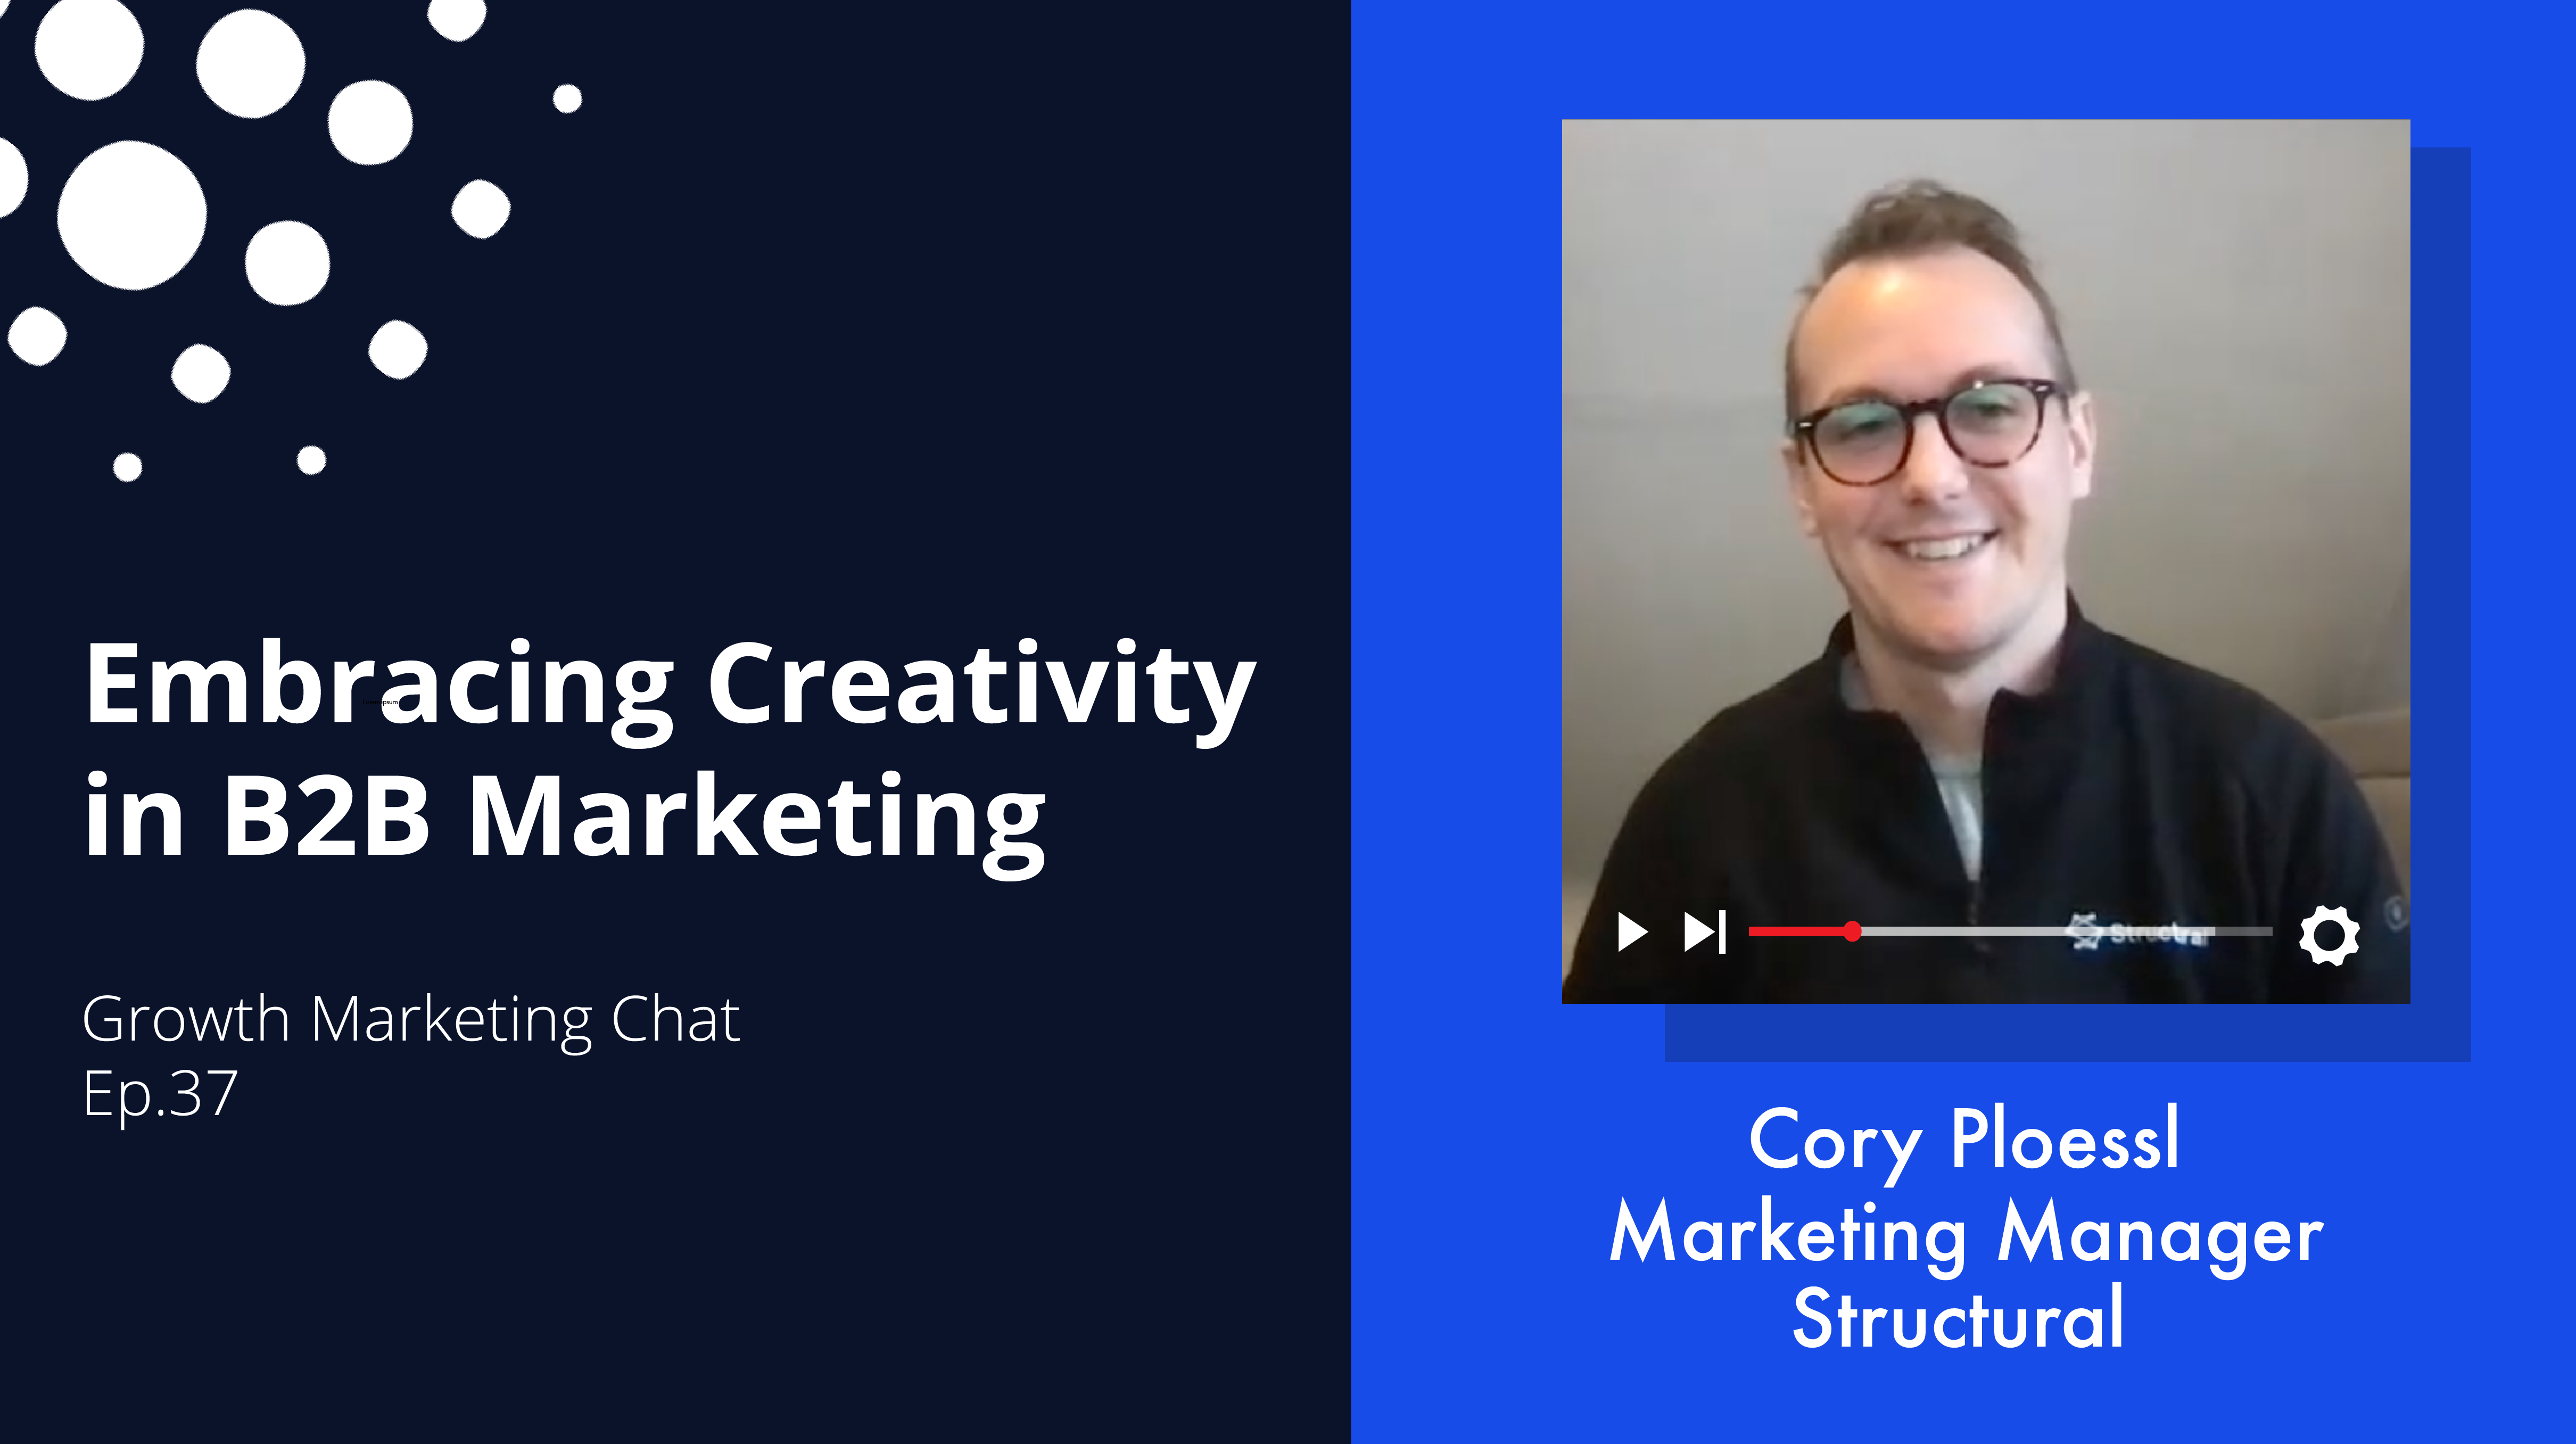 Avoid Boring Marketing! Learn How to Embrace Creativity in B2B